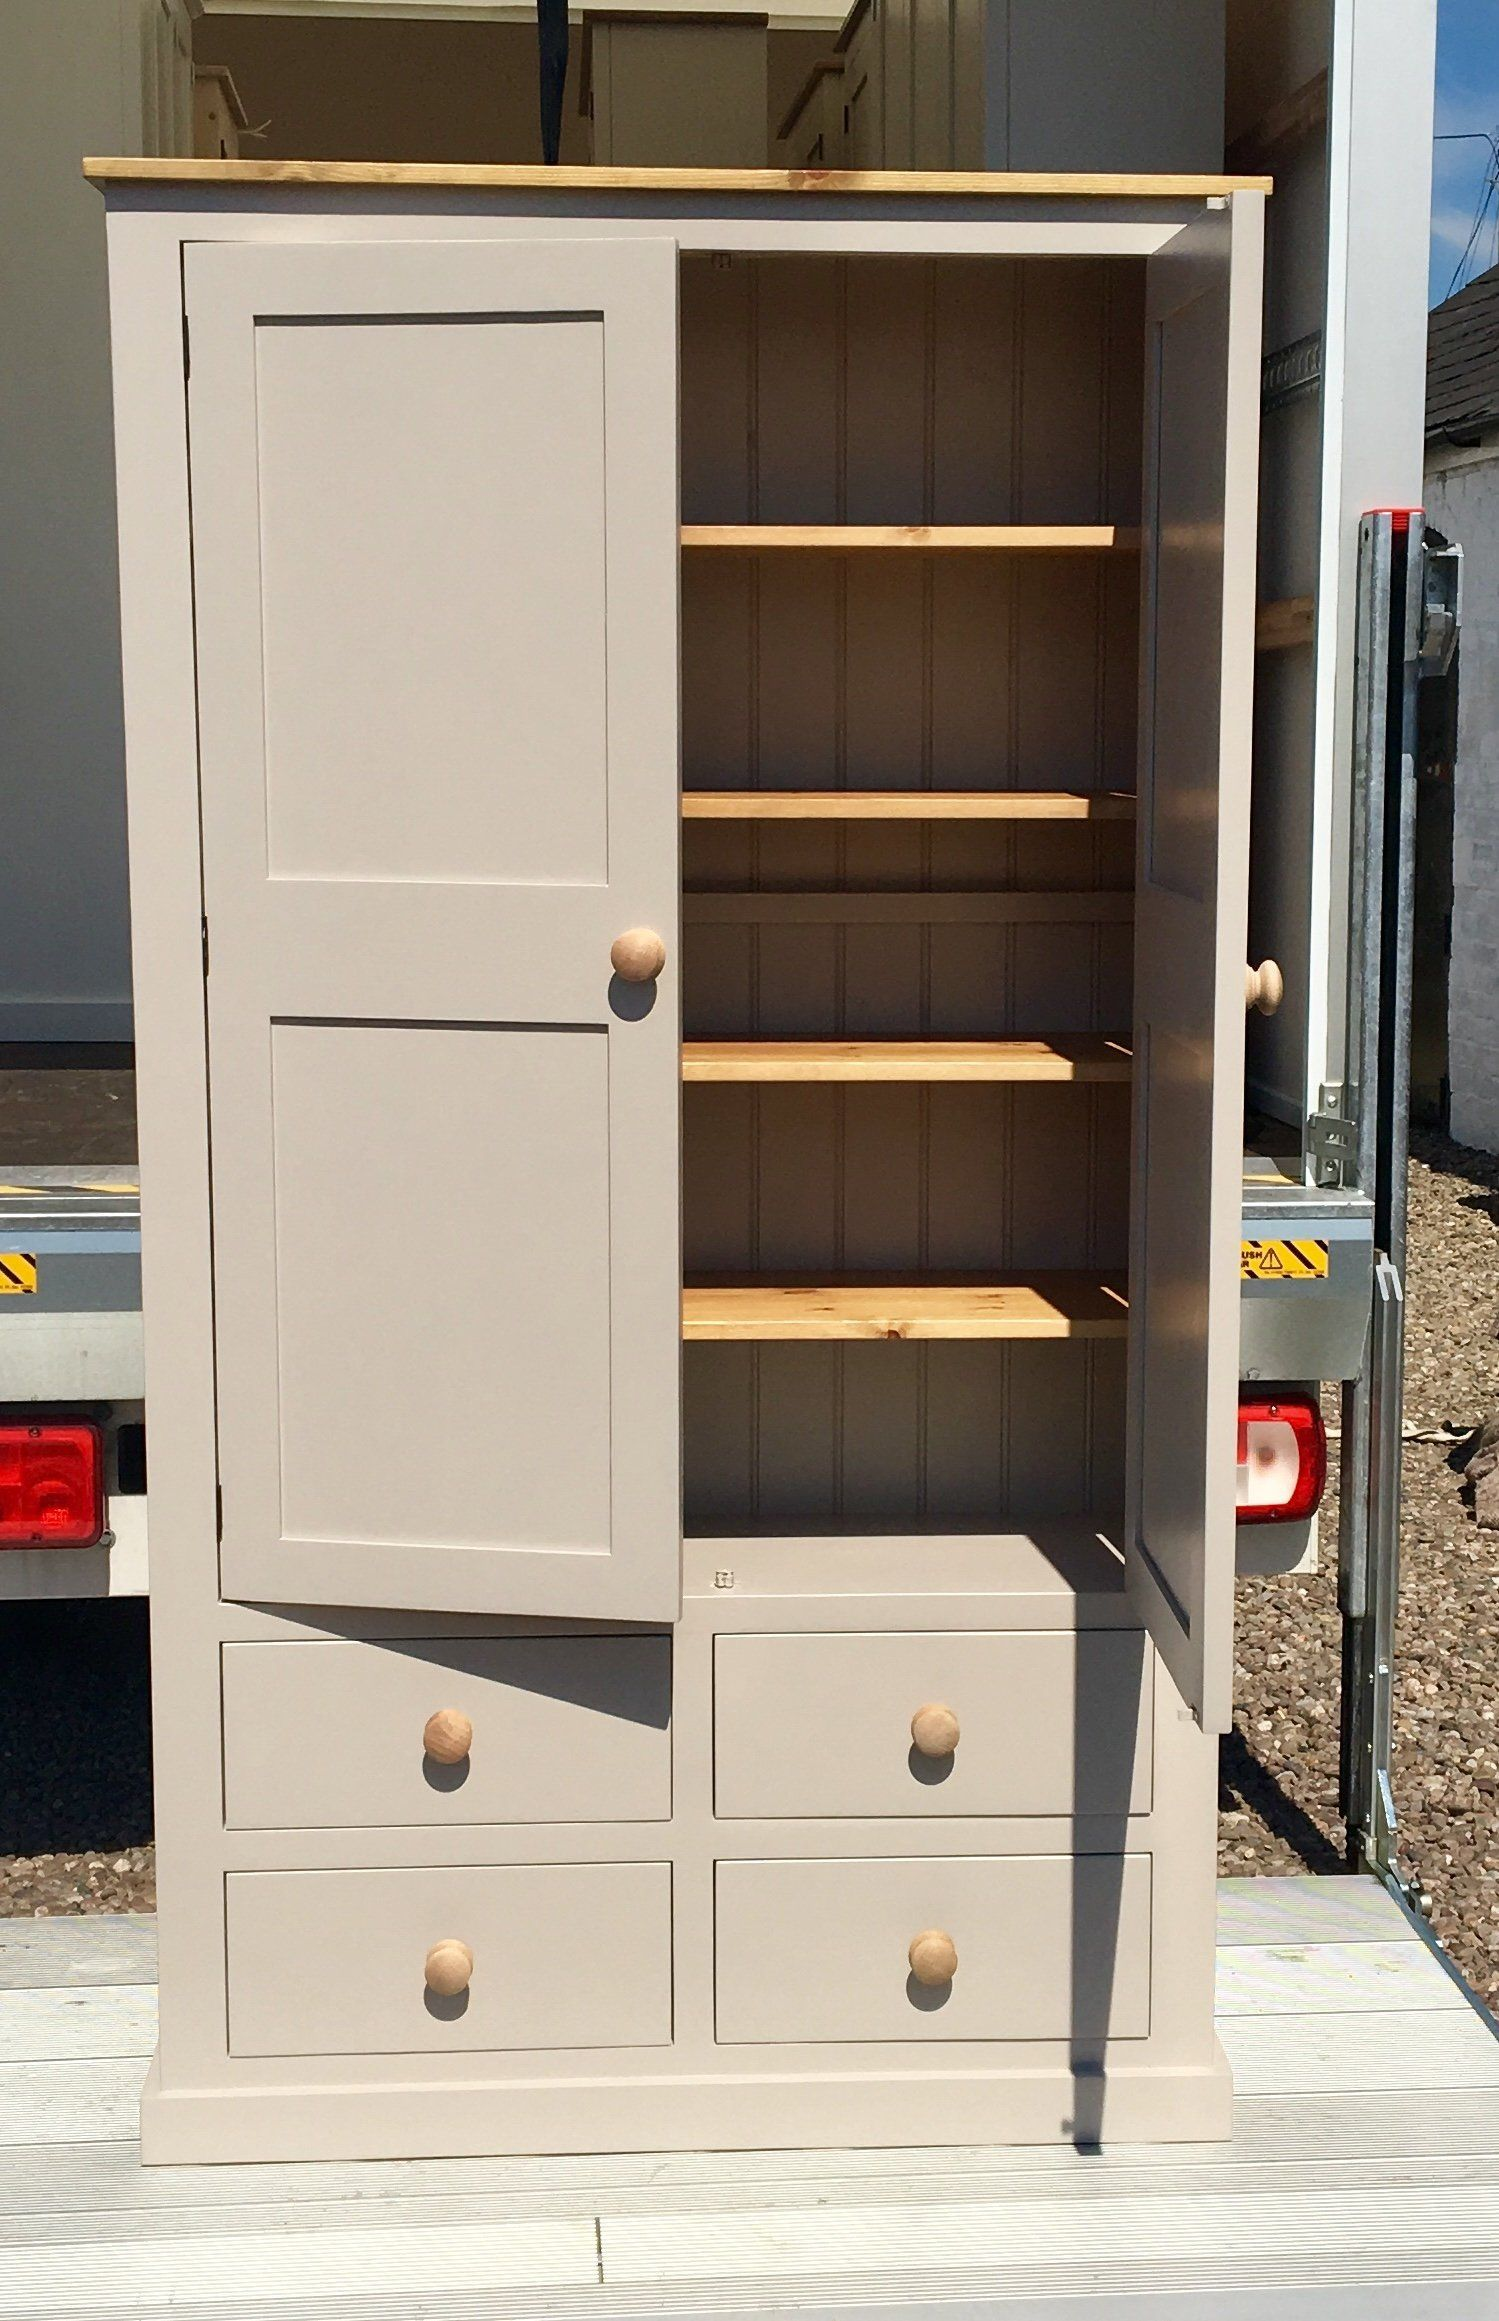 2 Door With 4 Drawer Kitchen Pantry Larder Storage Cupboard With Spice Racks Informations About 2 Door With 4 In 2020 Cupboard Storage Larder Storage Storage Drawers